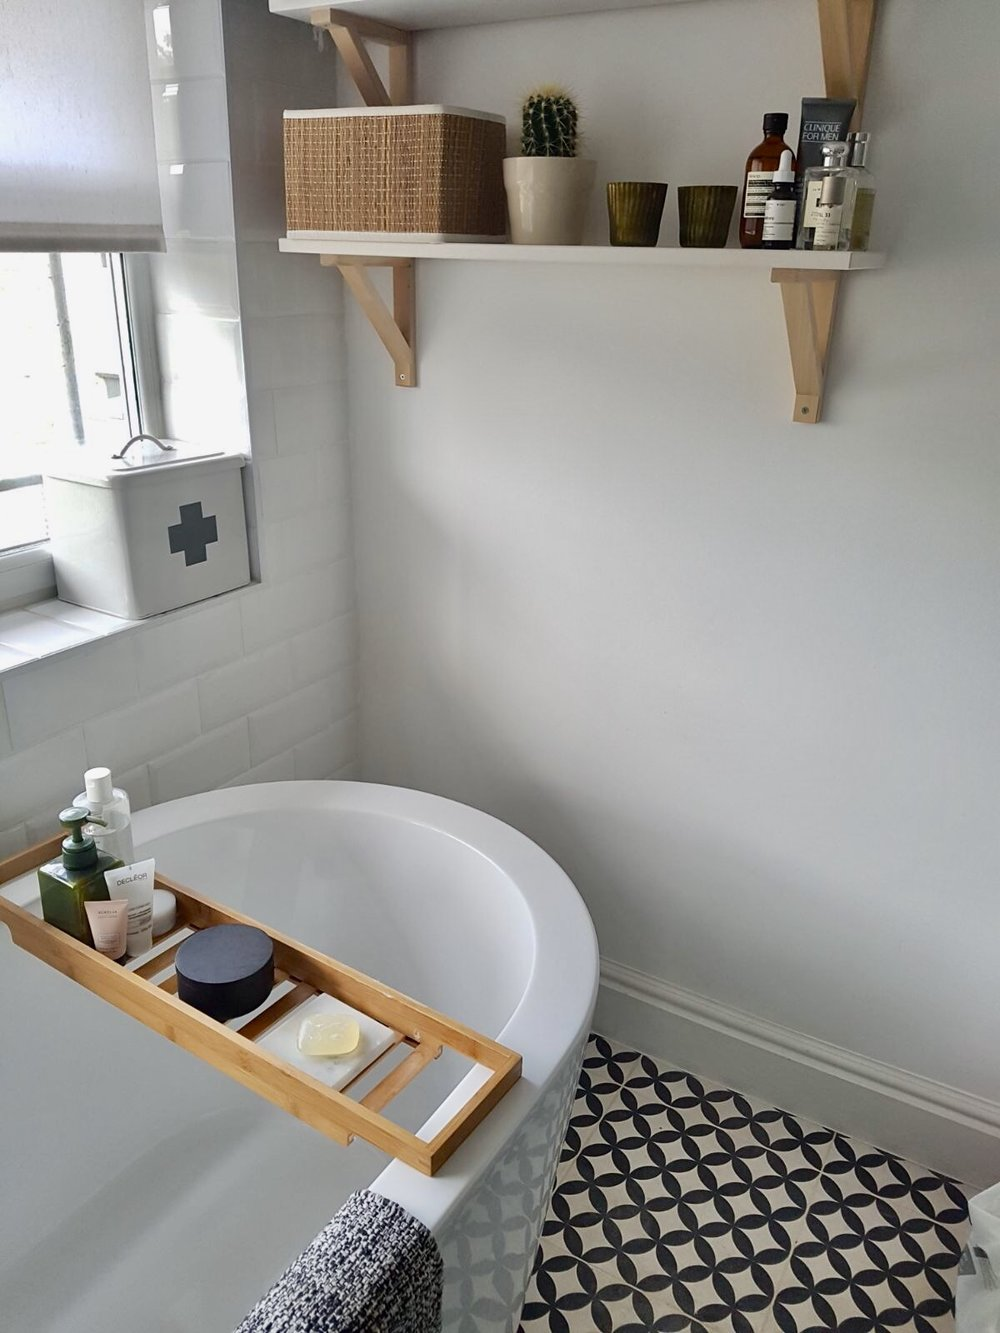 Bath caddies keep everything tidy and within easy reach